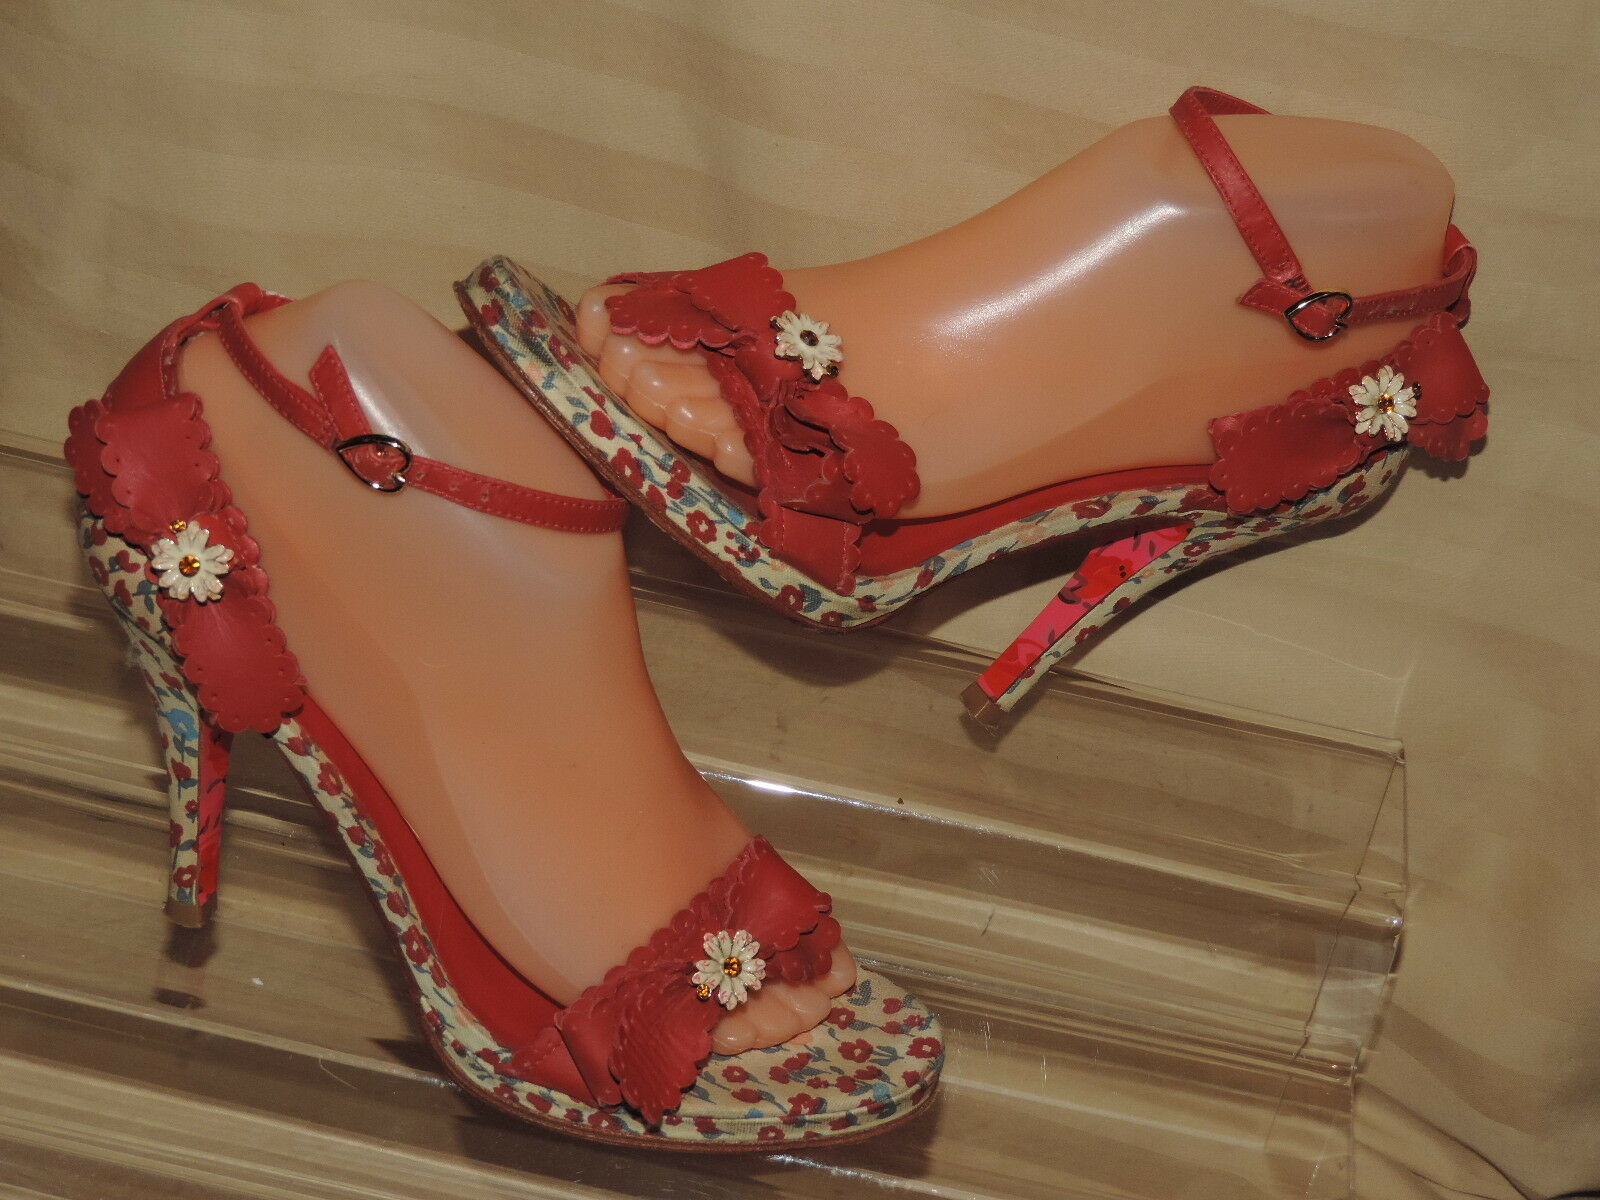 Betsey Johnson 8 M Stiletto Open toe Ankle Strap ROT Leder Bow Flower print